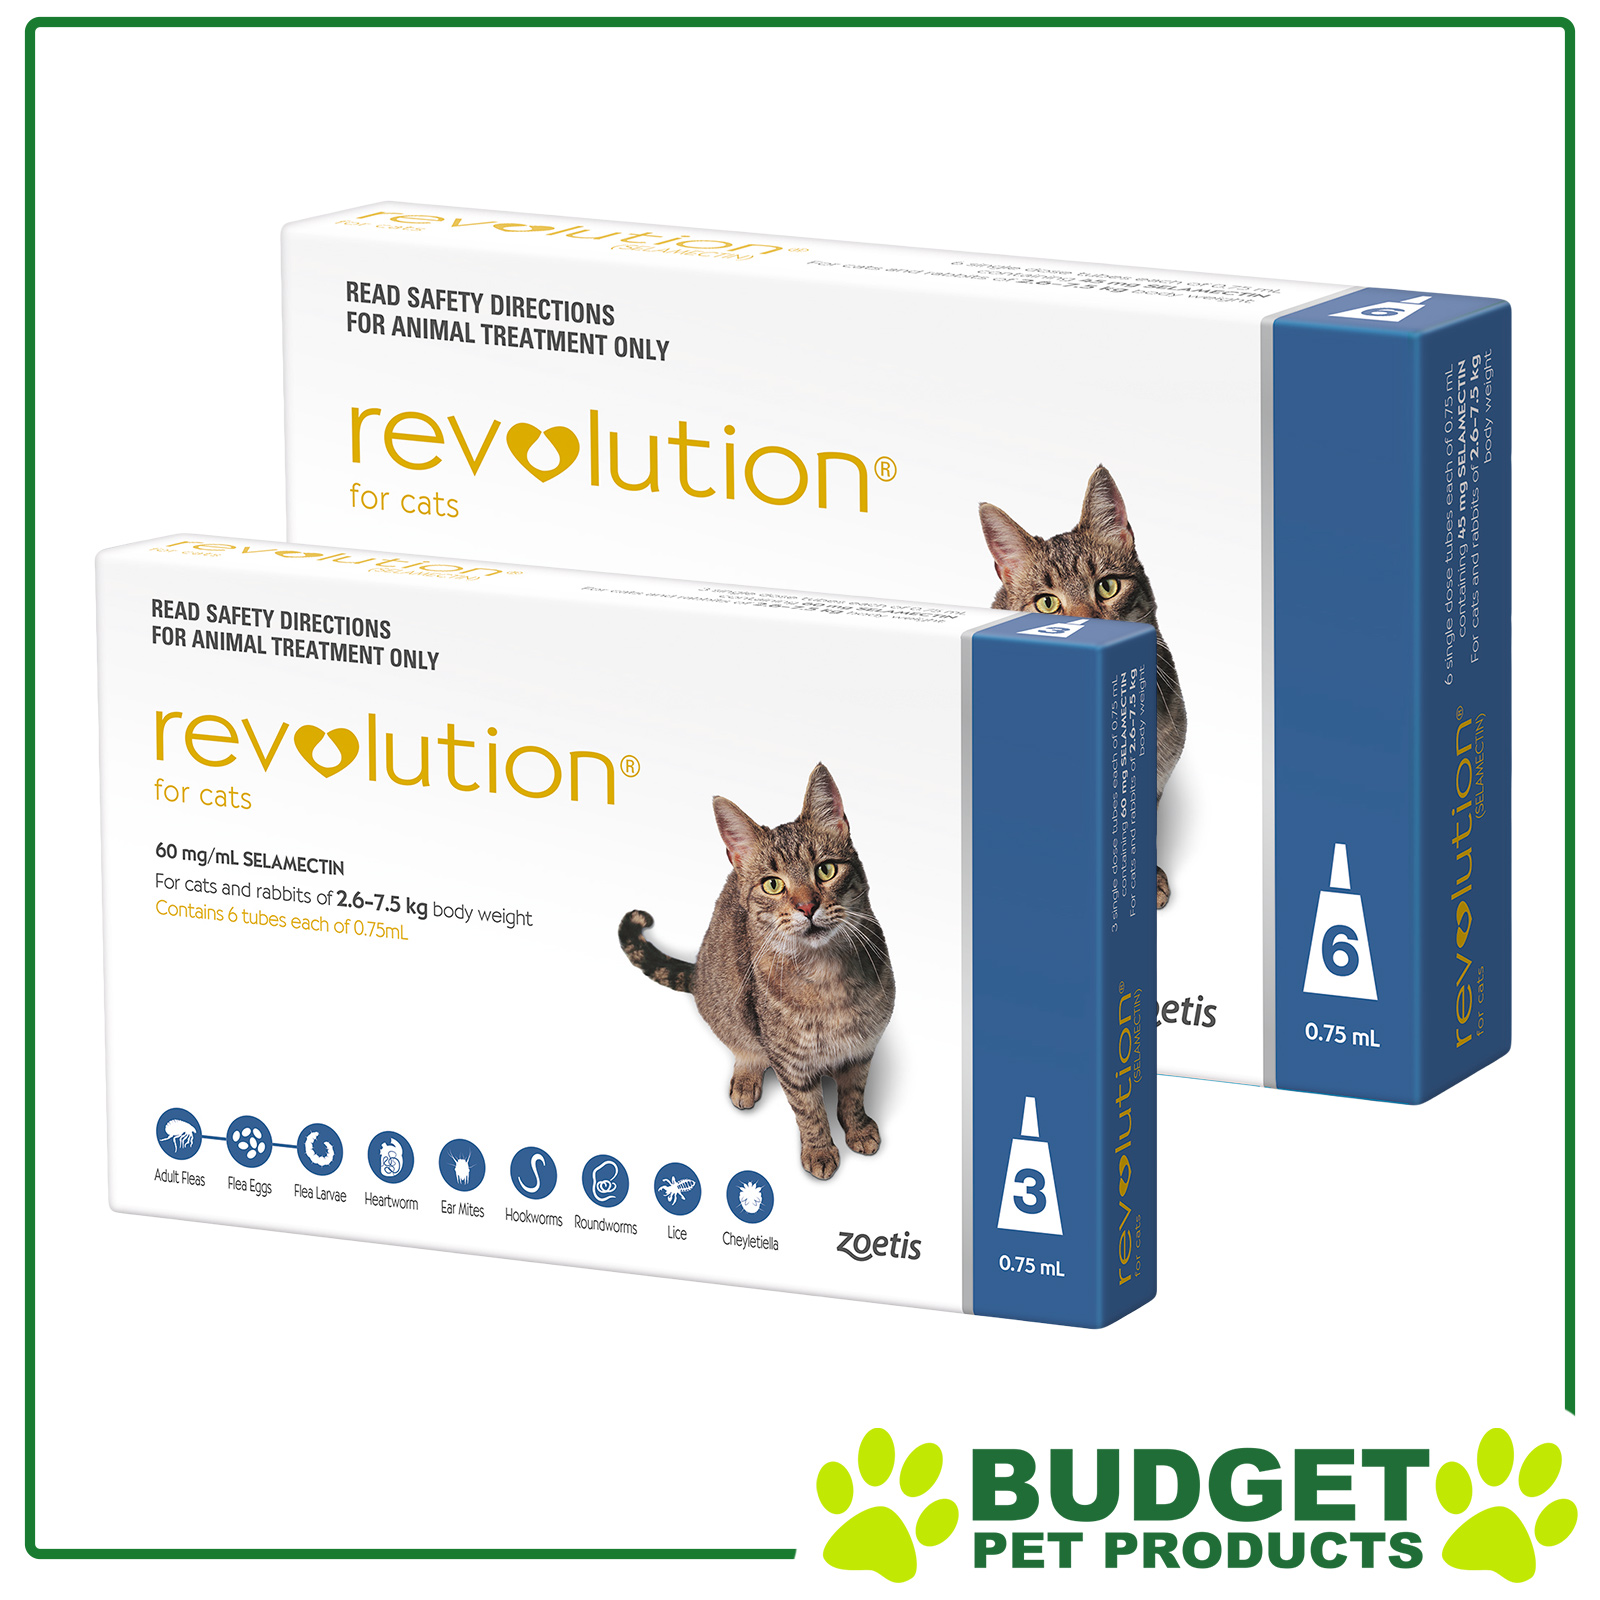 Revolution-For-Cats-2-6-7-5kg-Blue-9-Doses